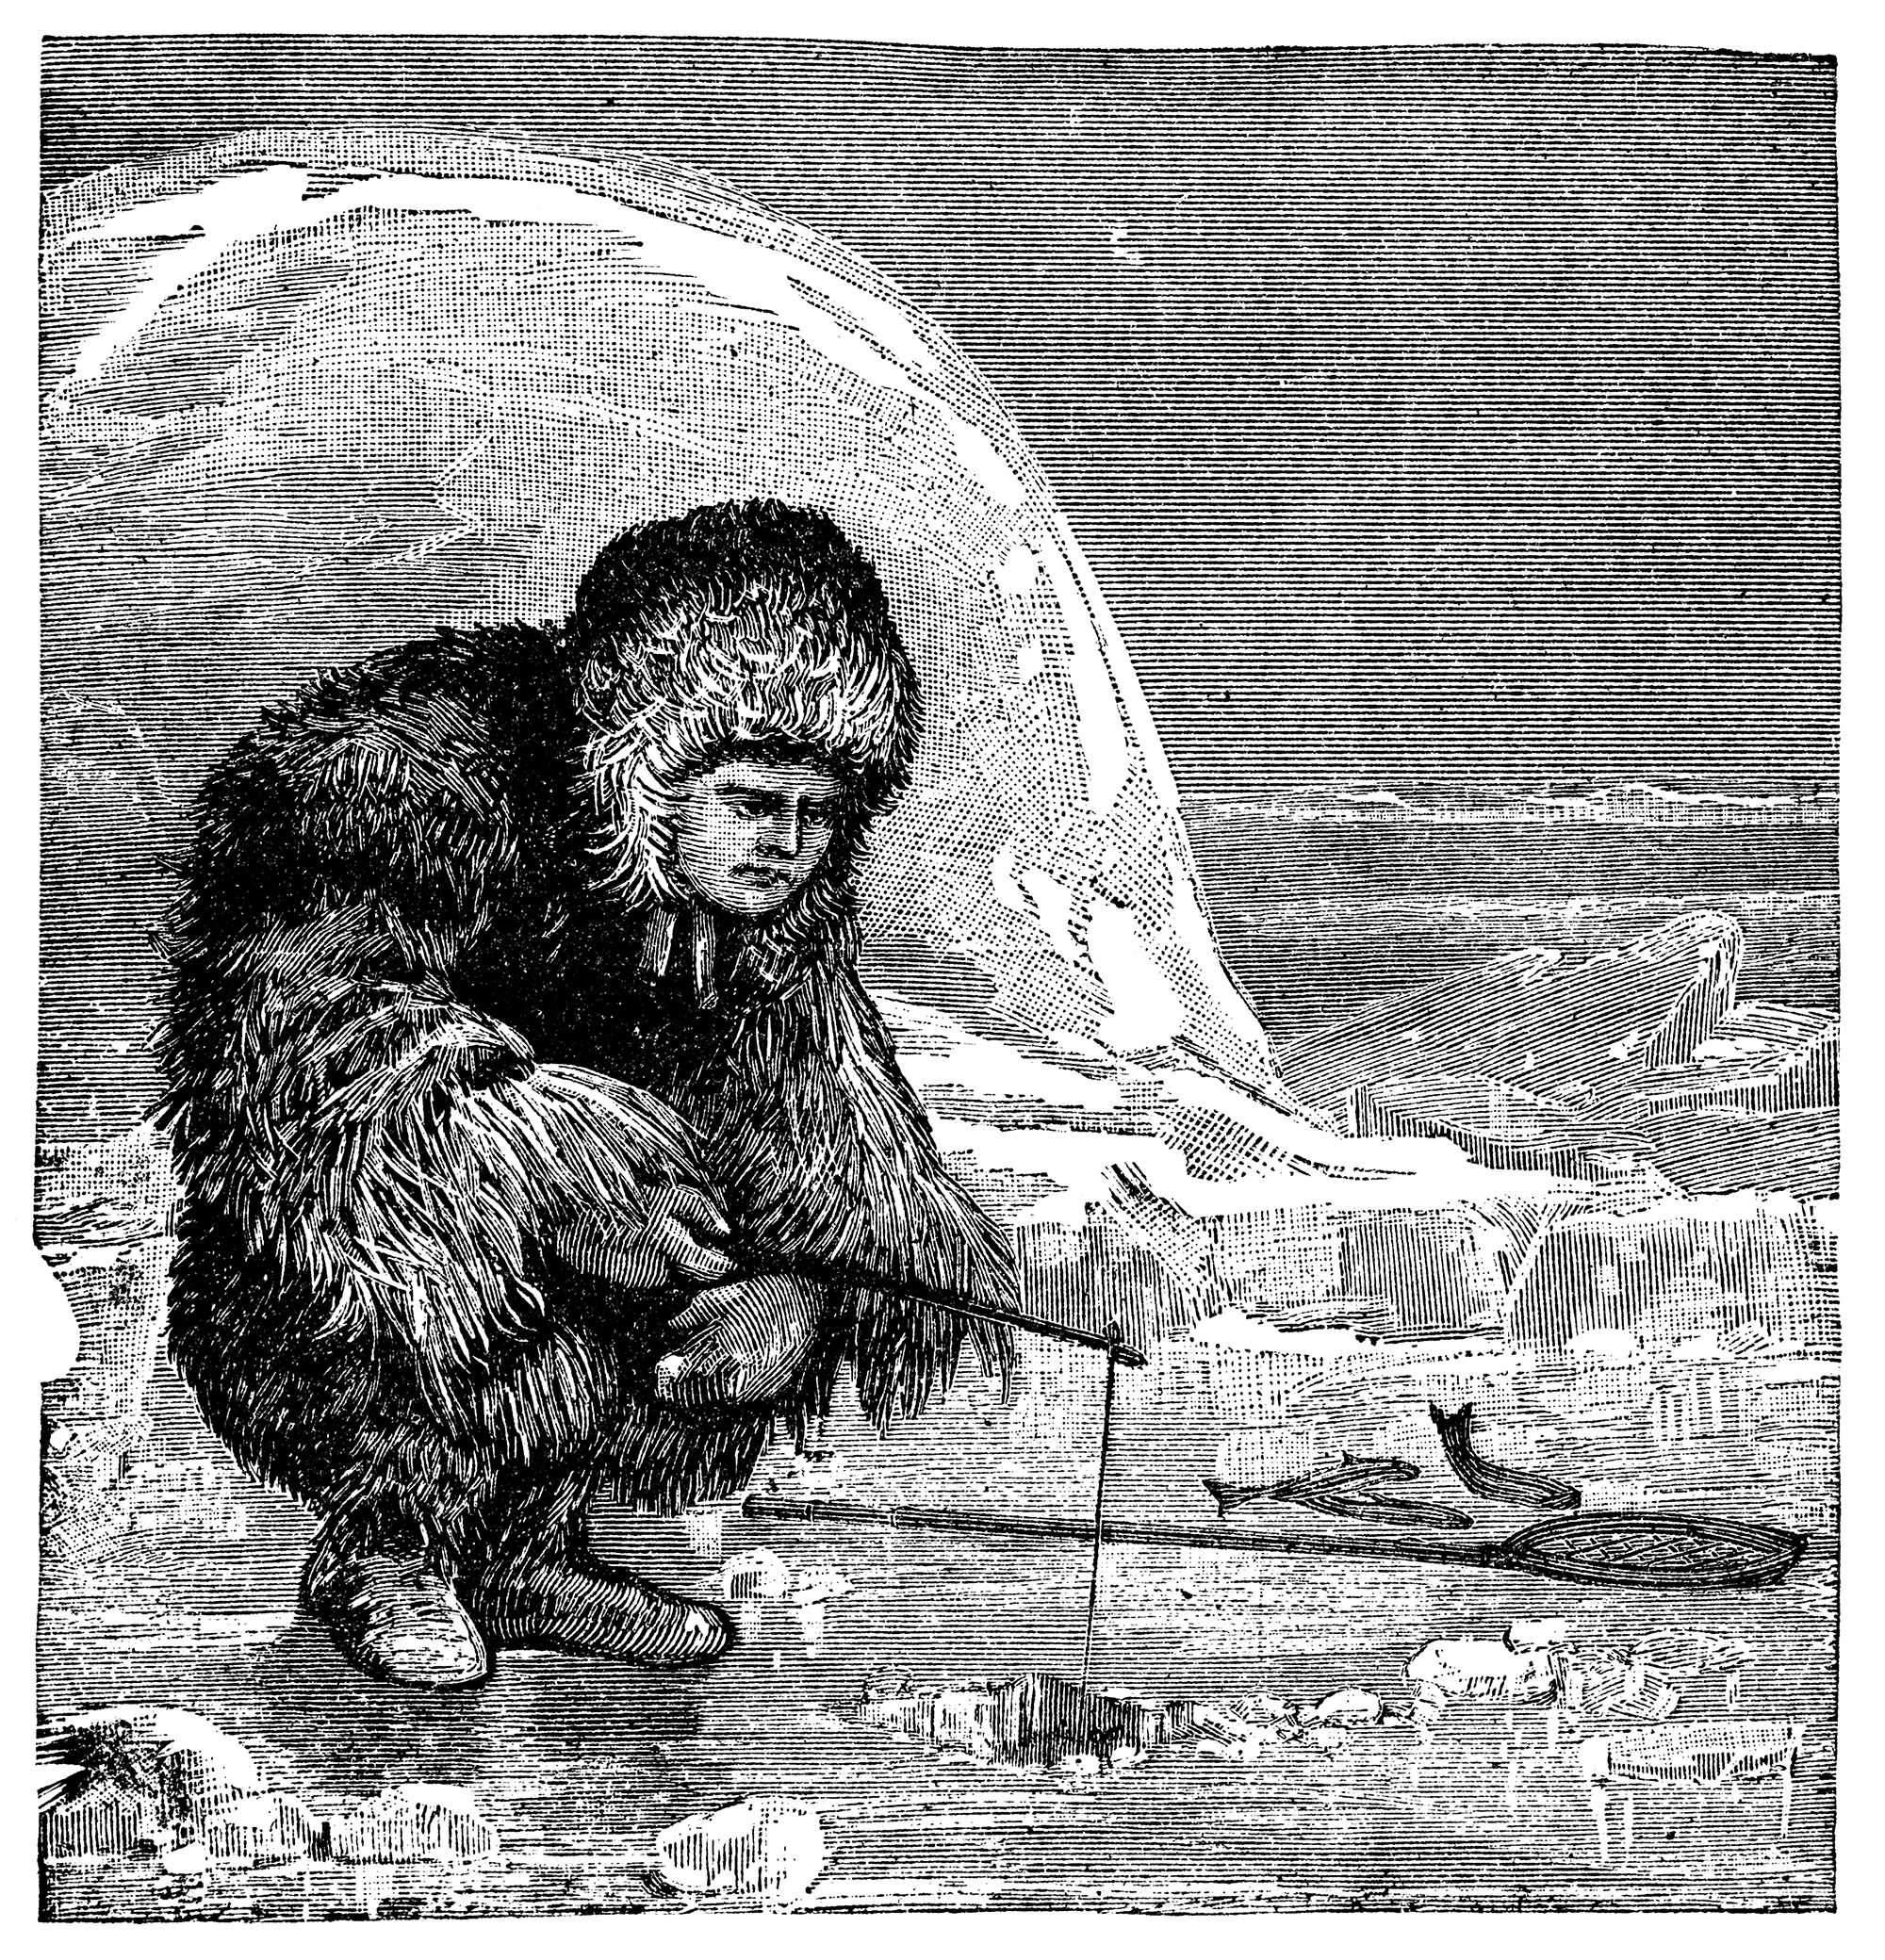 photographed from a book titled 'The World's Wonders as Seen by the Great Tropical and Polar Explorers' published in London 1883. Copyright has expired on this artwork. Digitally restored.